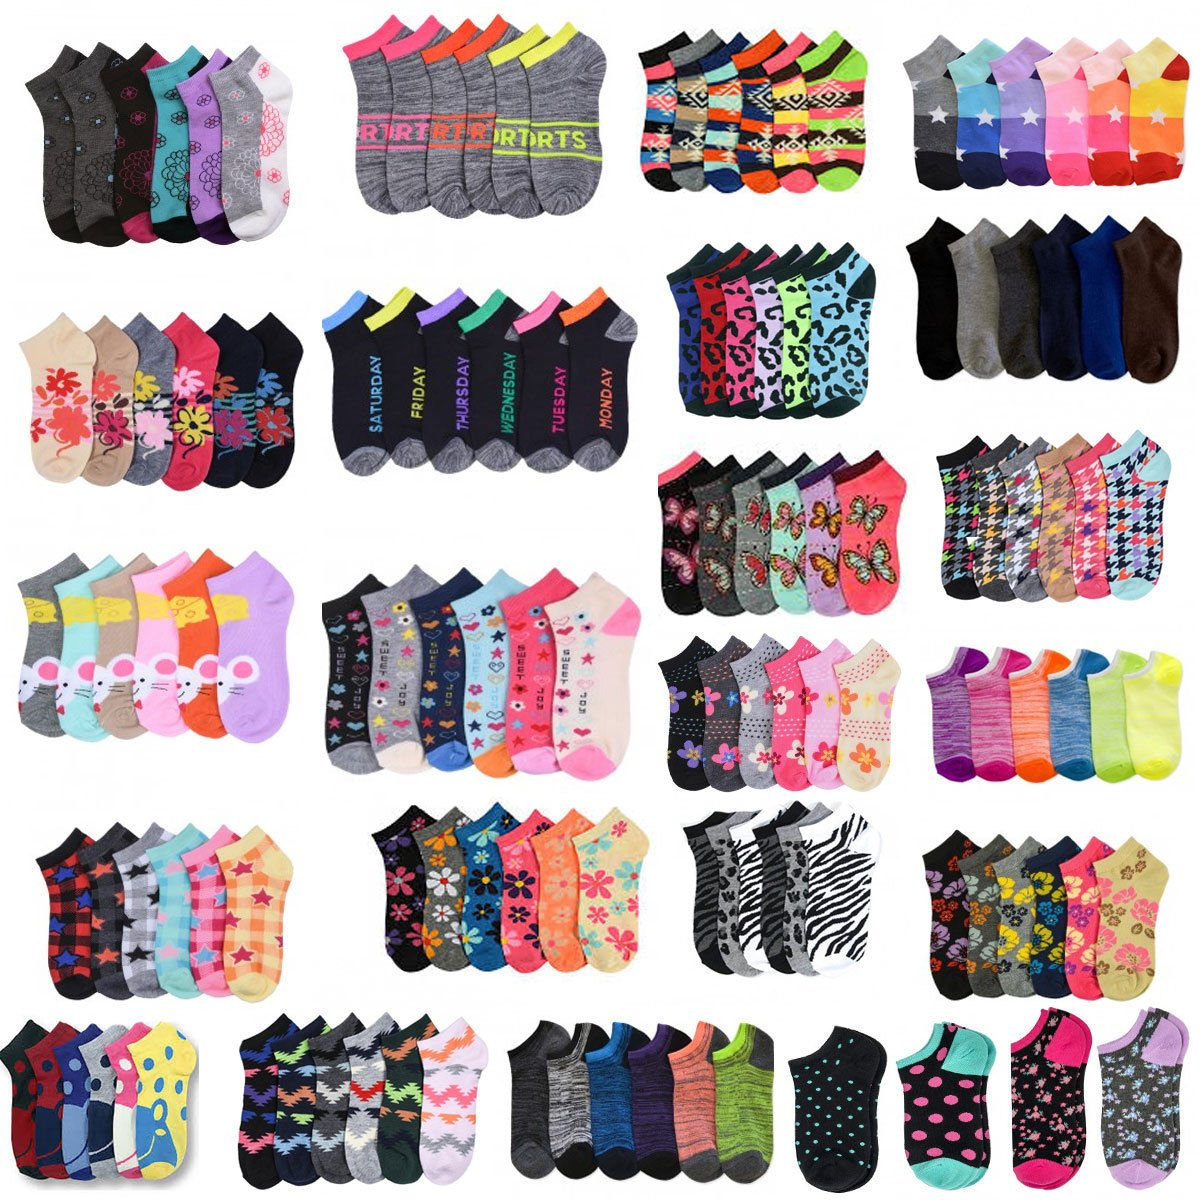 Size 6-8 Wholesale Lot Women's Girl Mixed Assorted Designs Colors Ankle Low Cut Socks - Choose Quantity (24) by zr_dnm